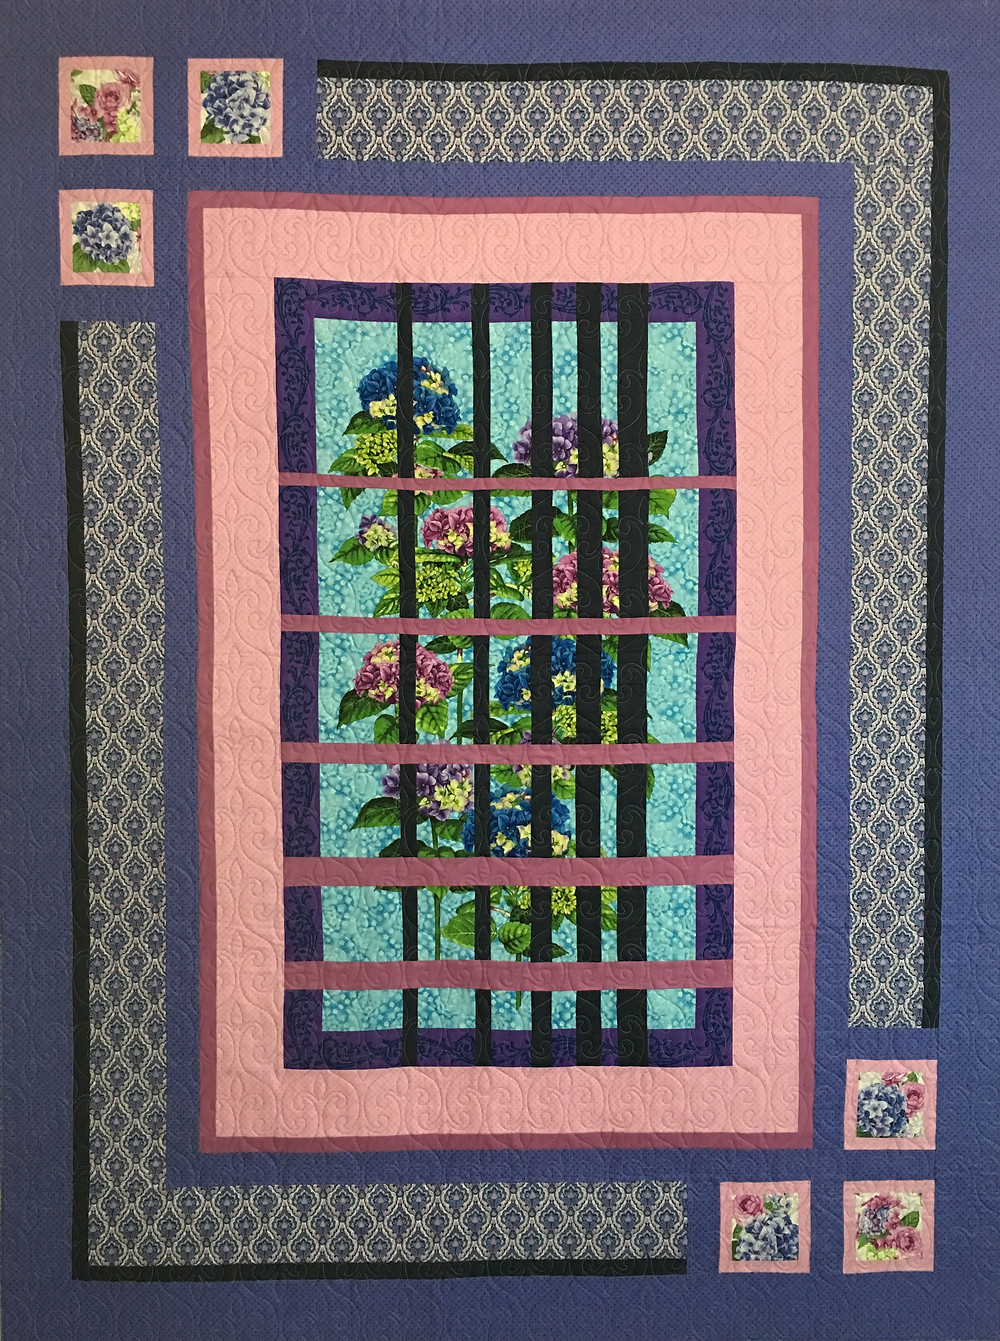 Convergence quilt by Wendy Bell